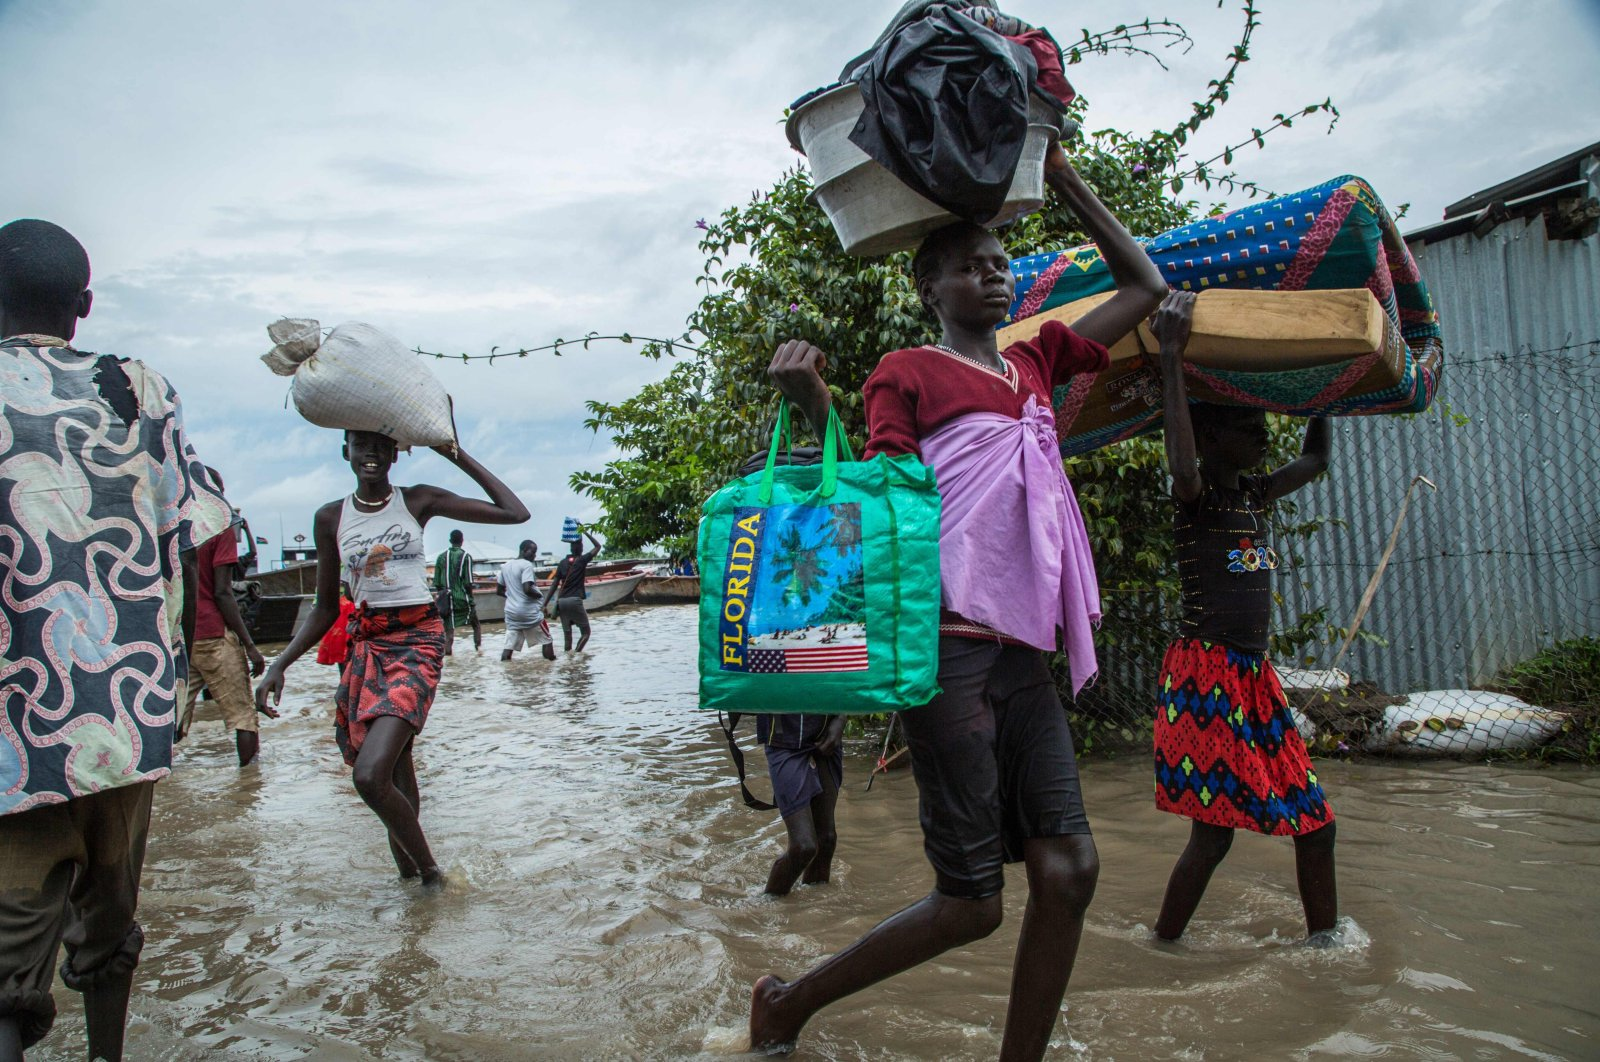 Displaced people walk with their belongings in a flooded area after the Nile river overflowed after continuous heavy rain which caused thousands of people to be displaced in Bor, central South Sudan, on Aug. 9, 2020. (AFP Photo)